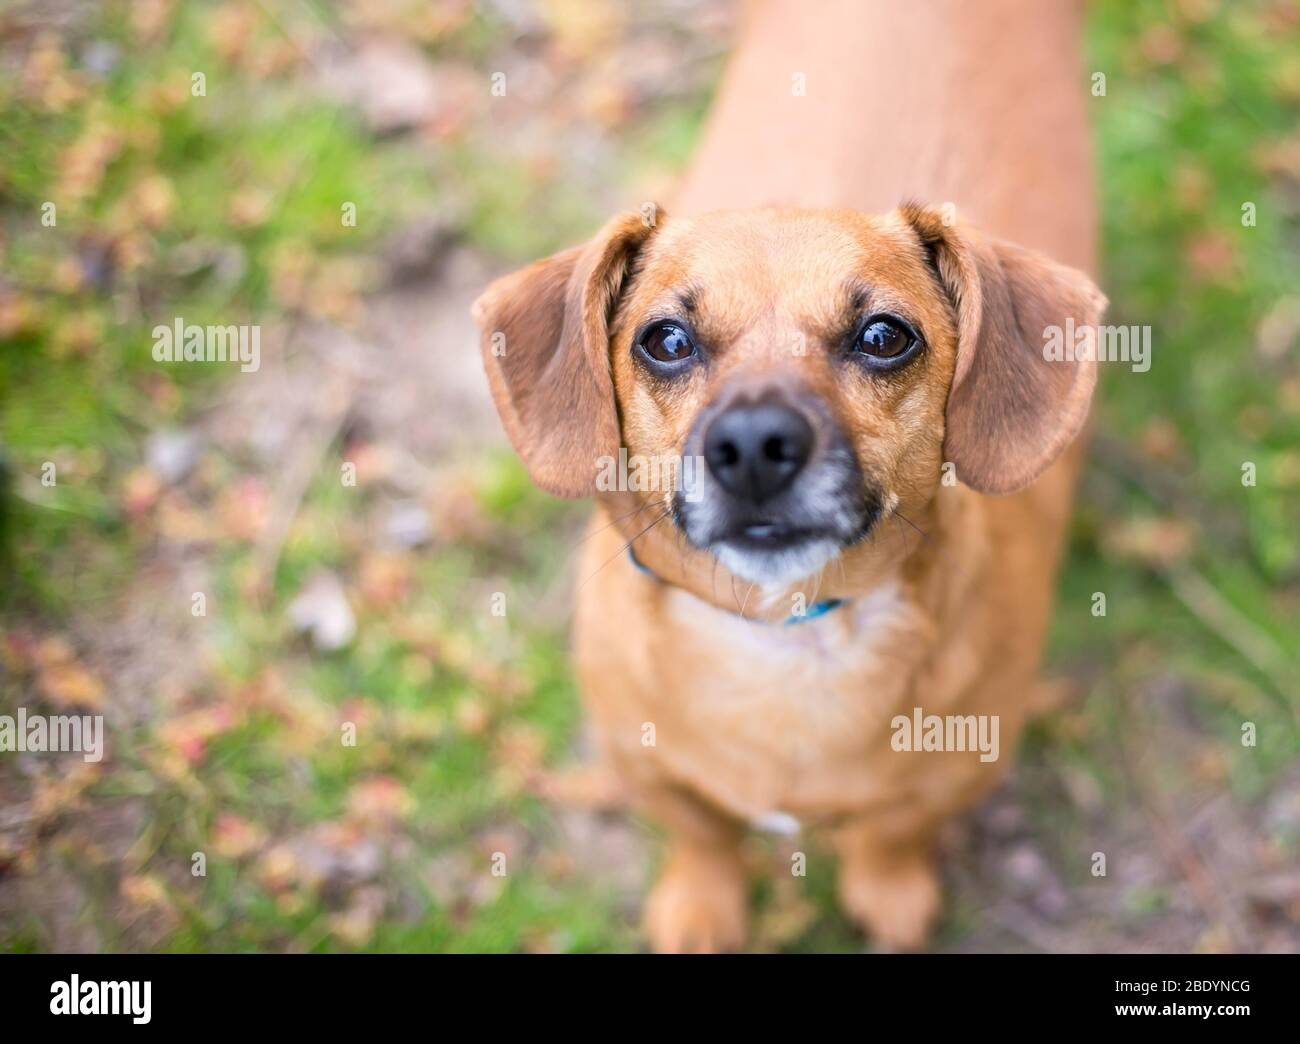 A cute red Dachshund mixed breed dog looking up at the camera Stock Photo